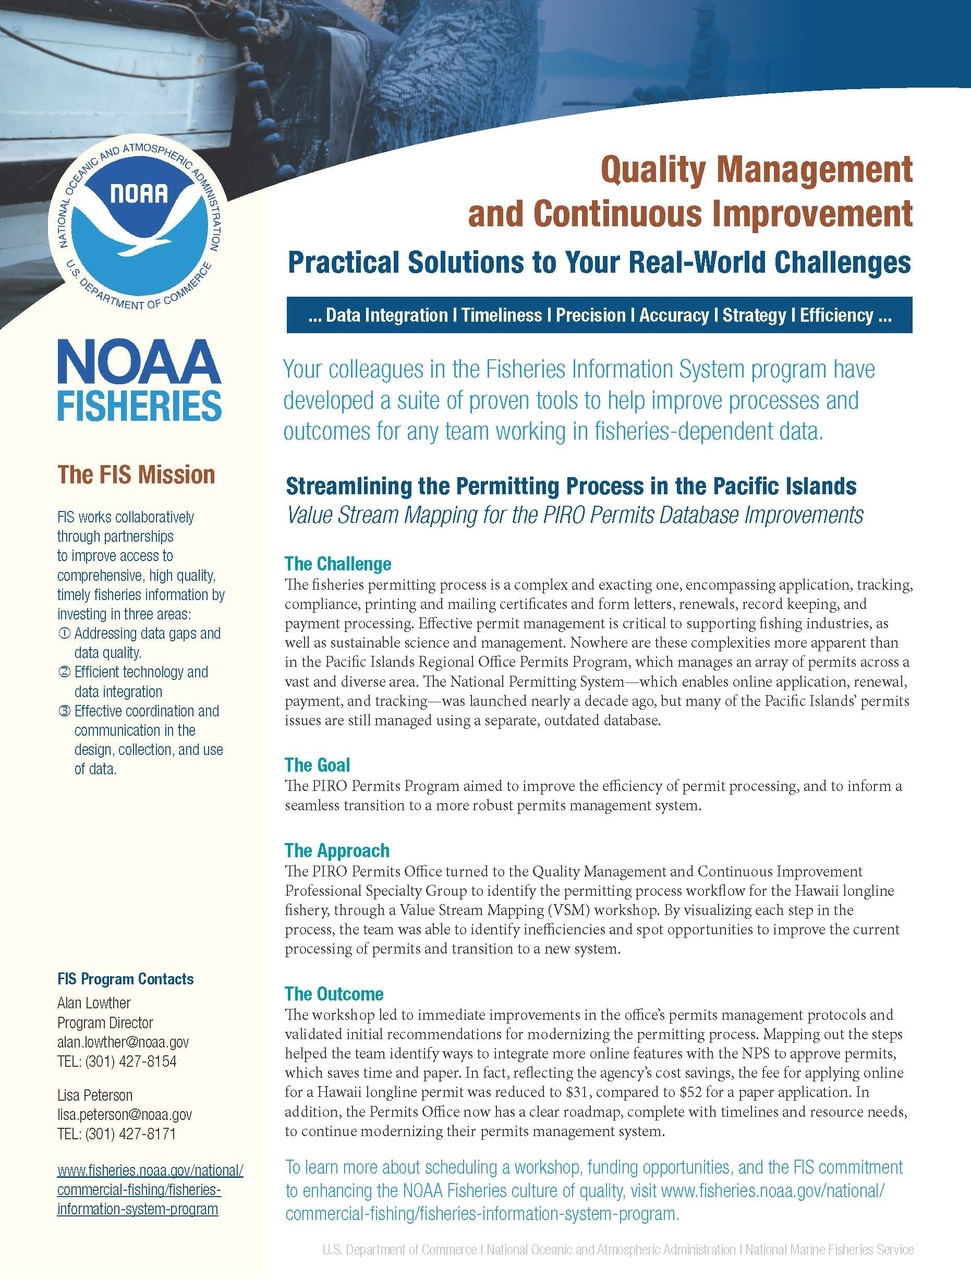 Success Story - Streamlining the Permitting Process cover.jpg